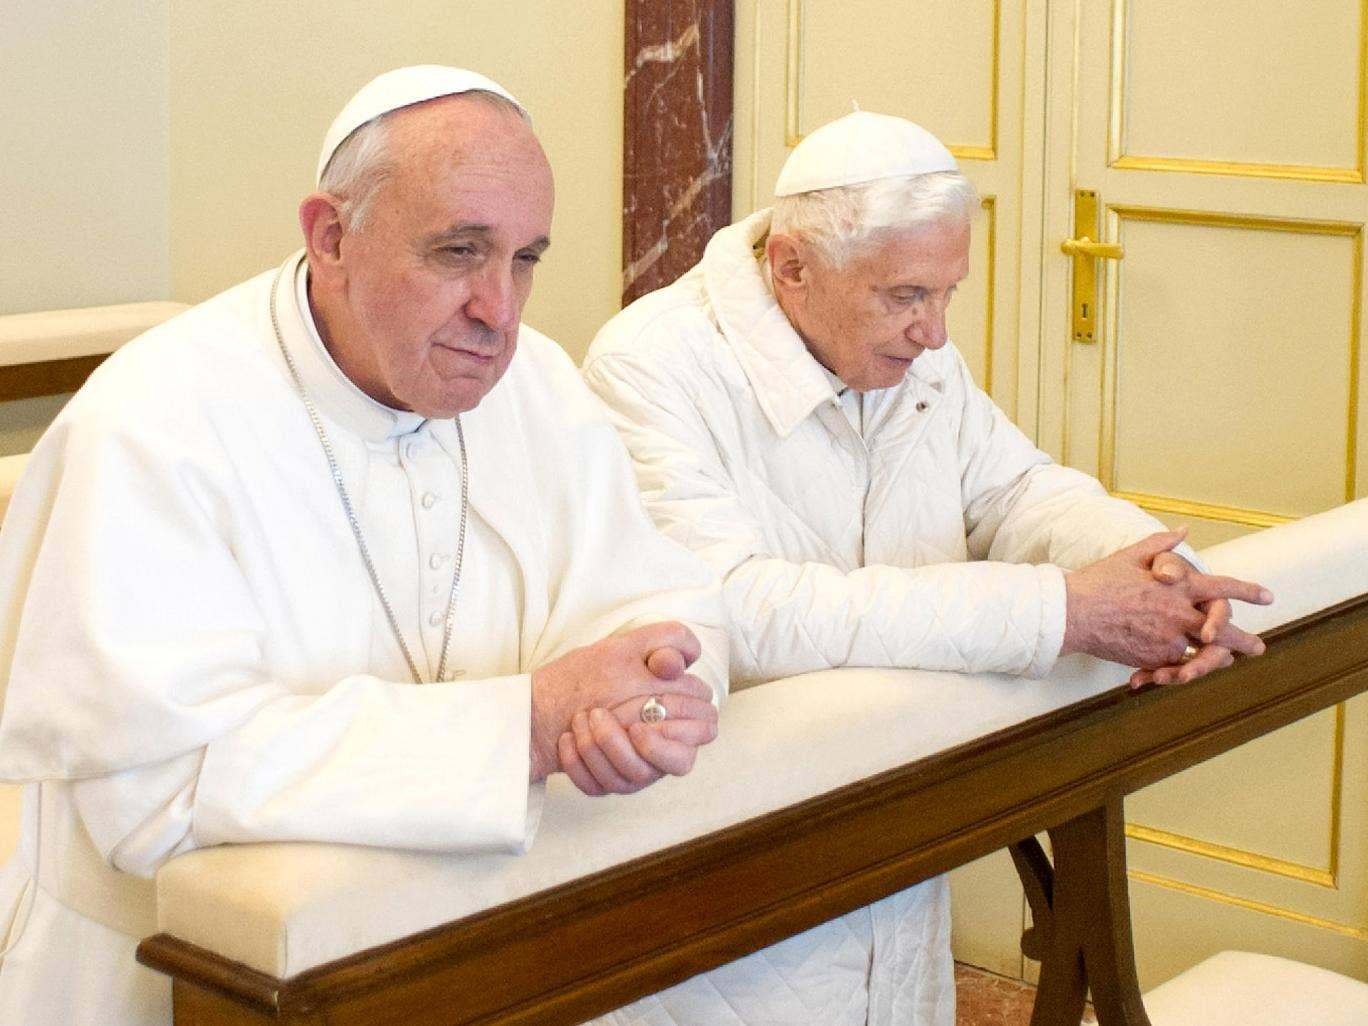 Popes current and former won't be watching the football together